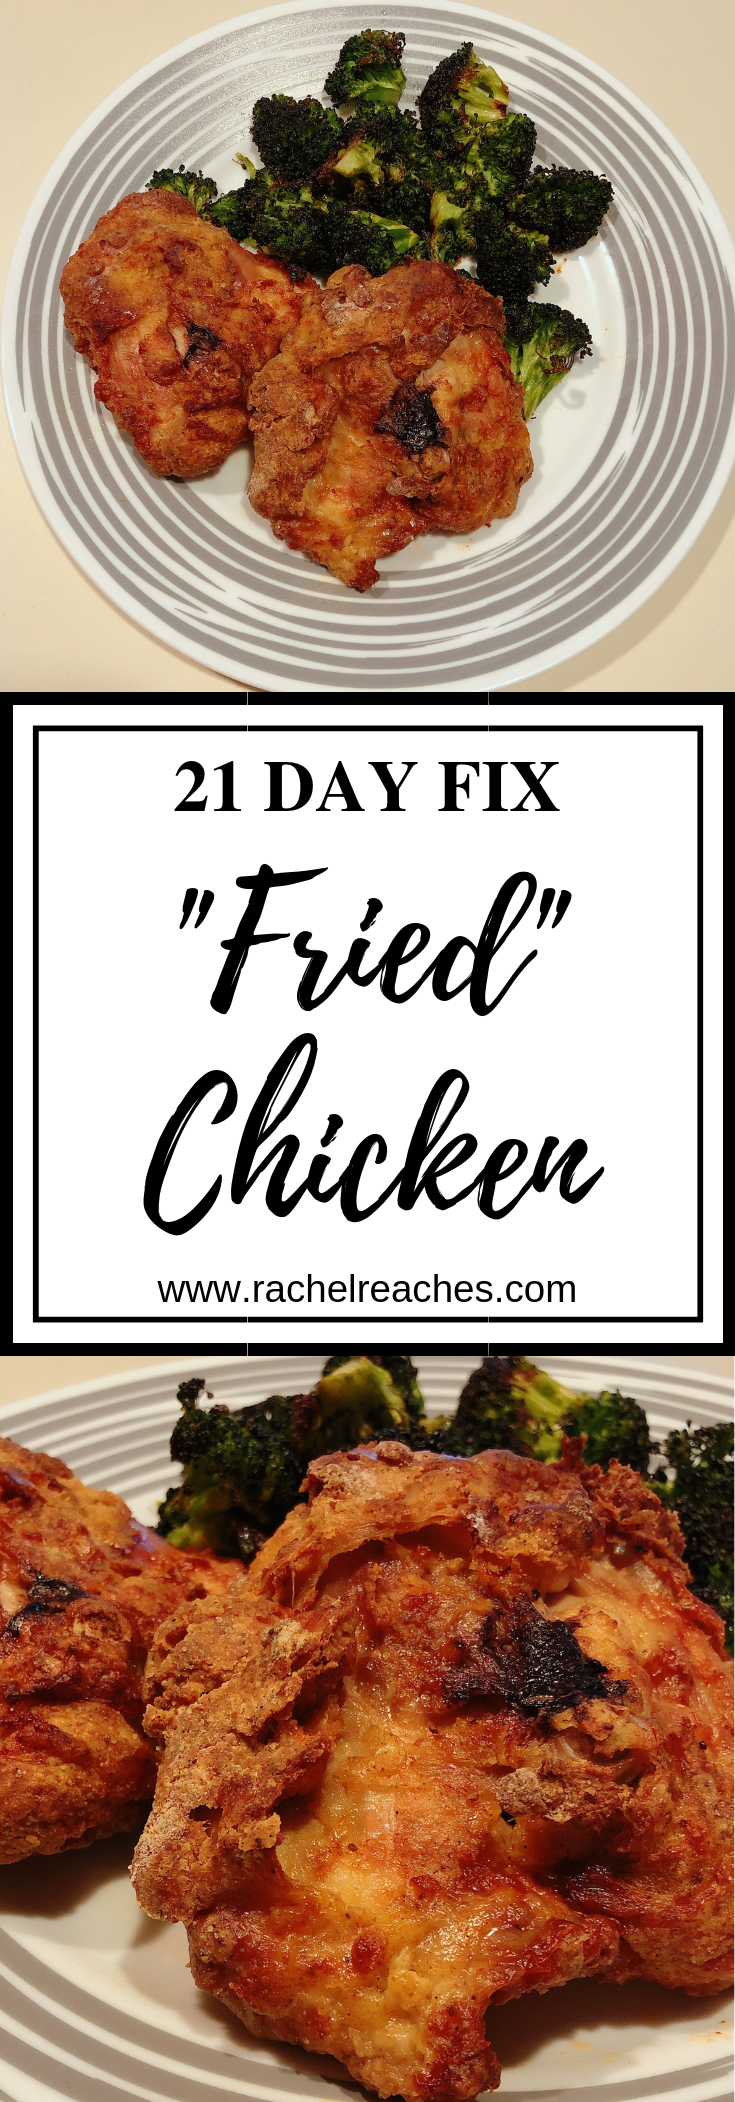 _Fried_ Chicken Pin - 21 Day Fix.png